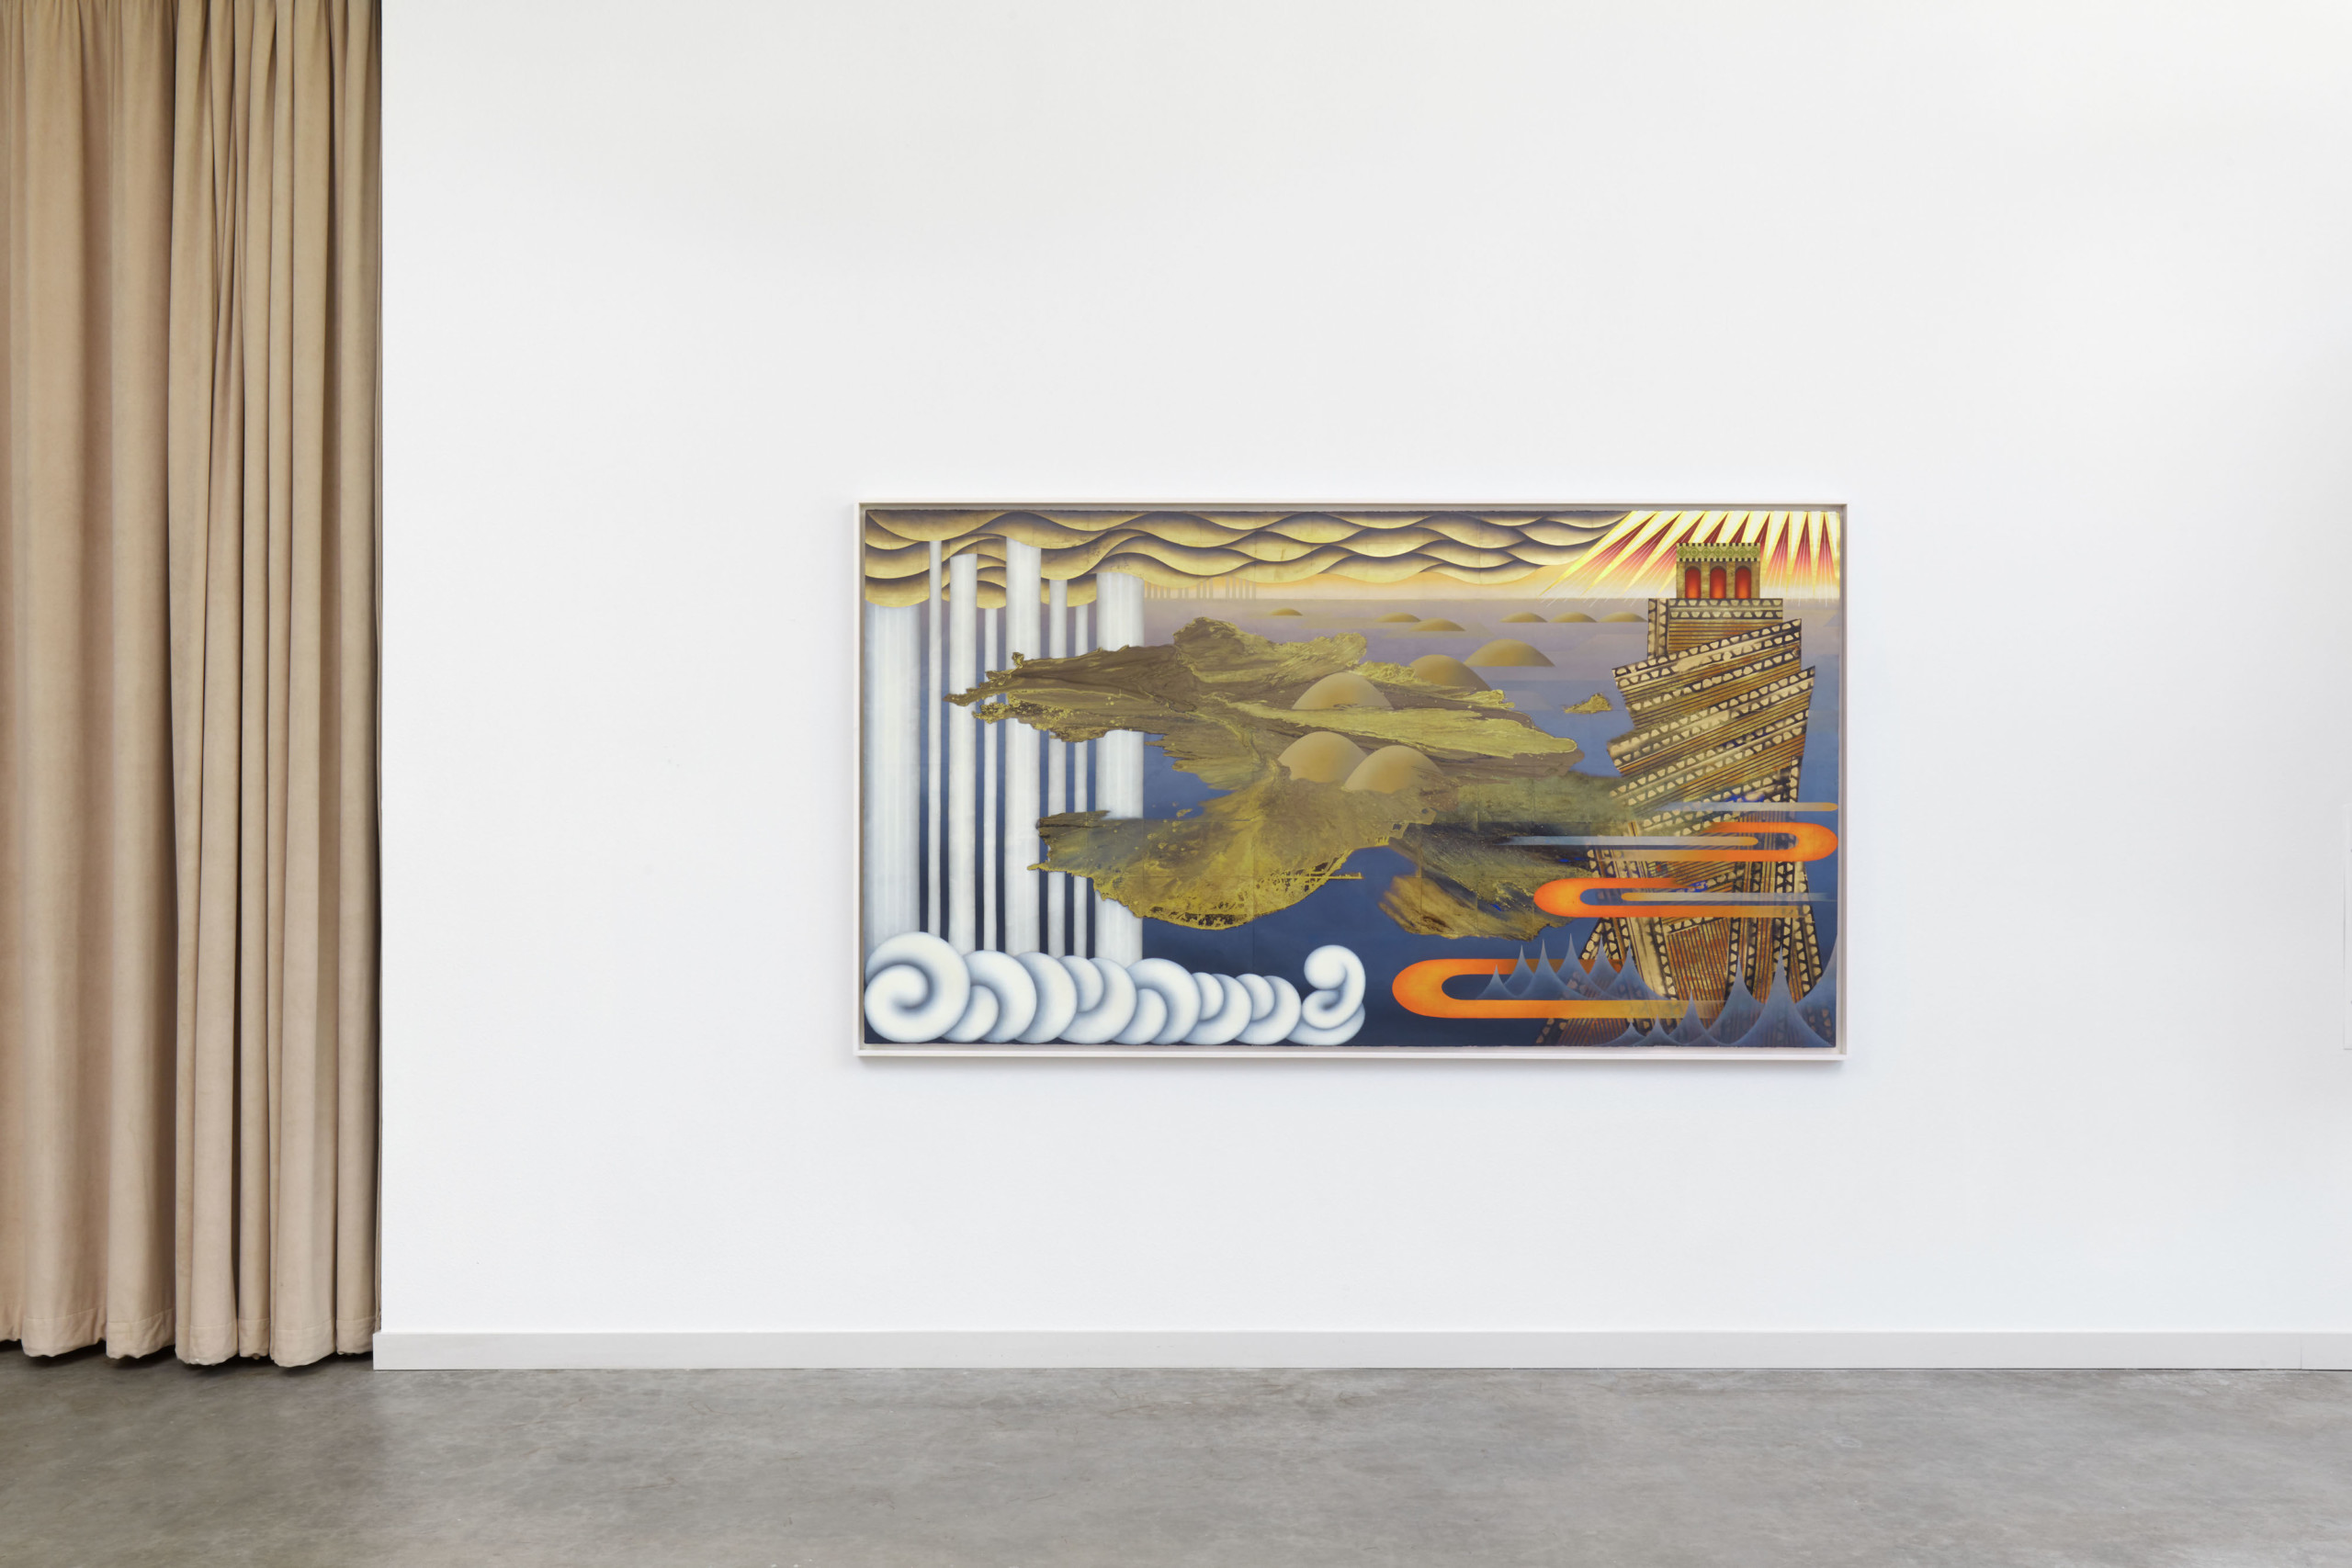 Artwork with gold leaf hanging in gallery space